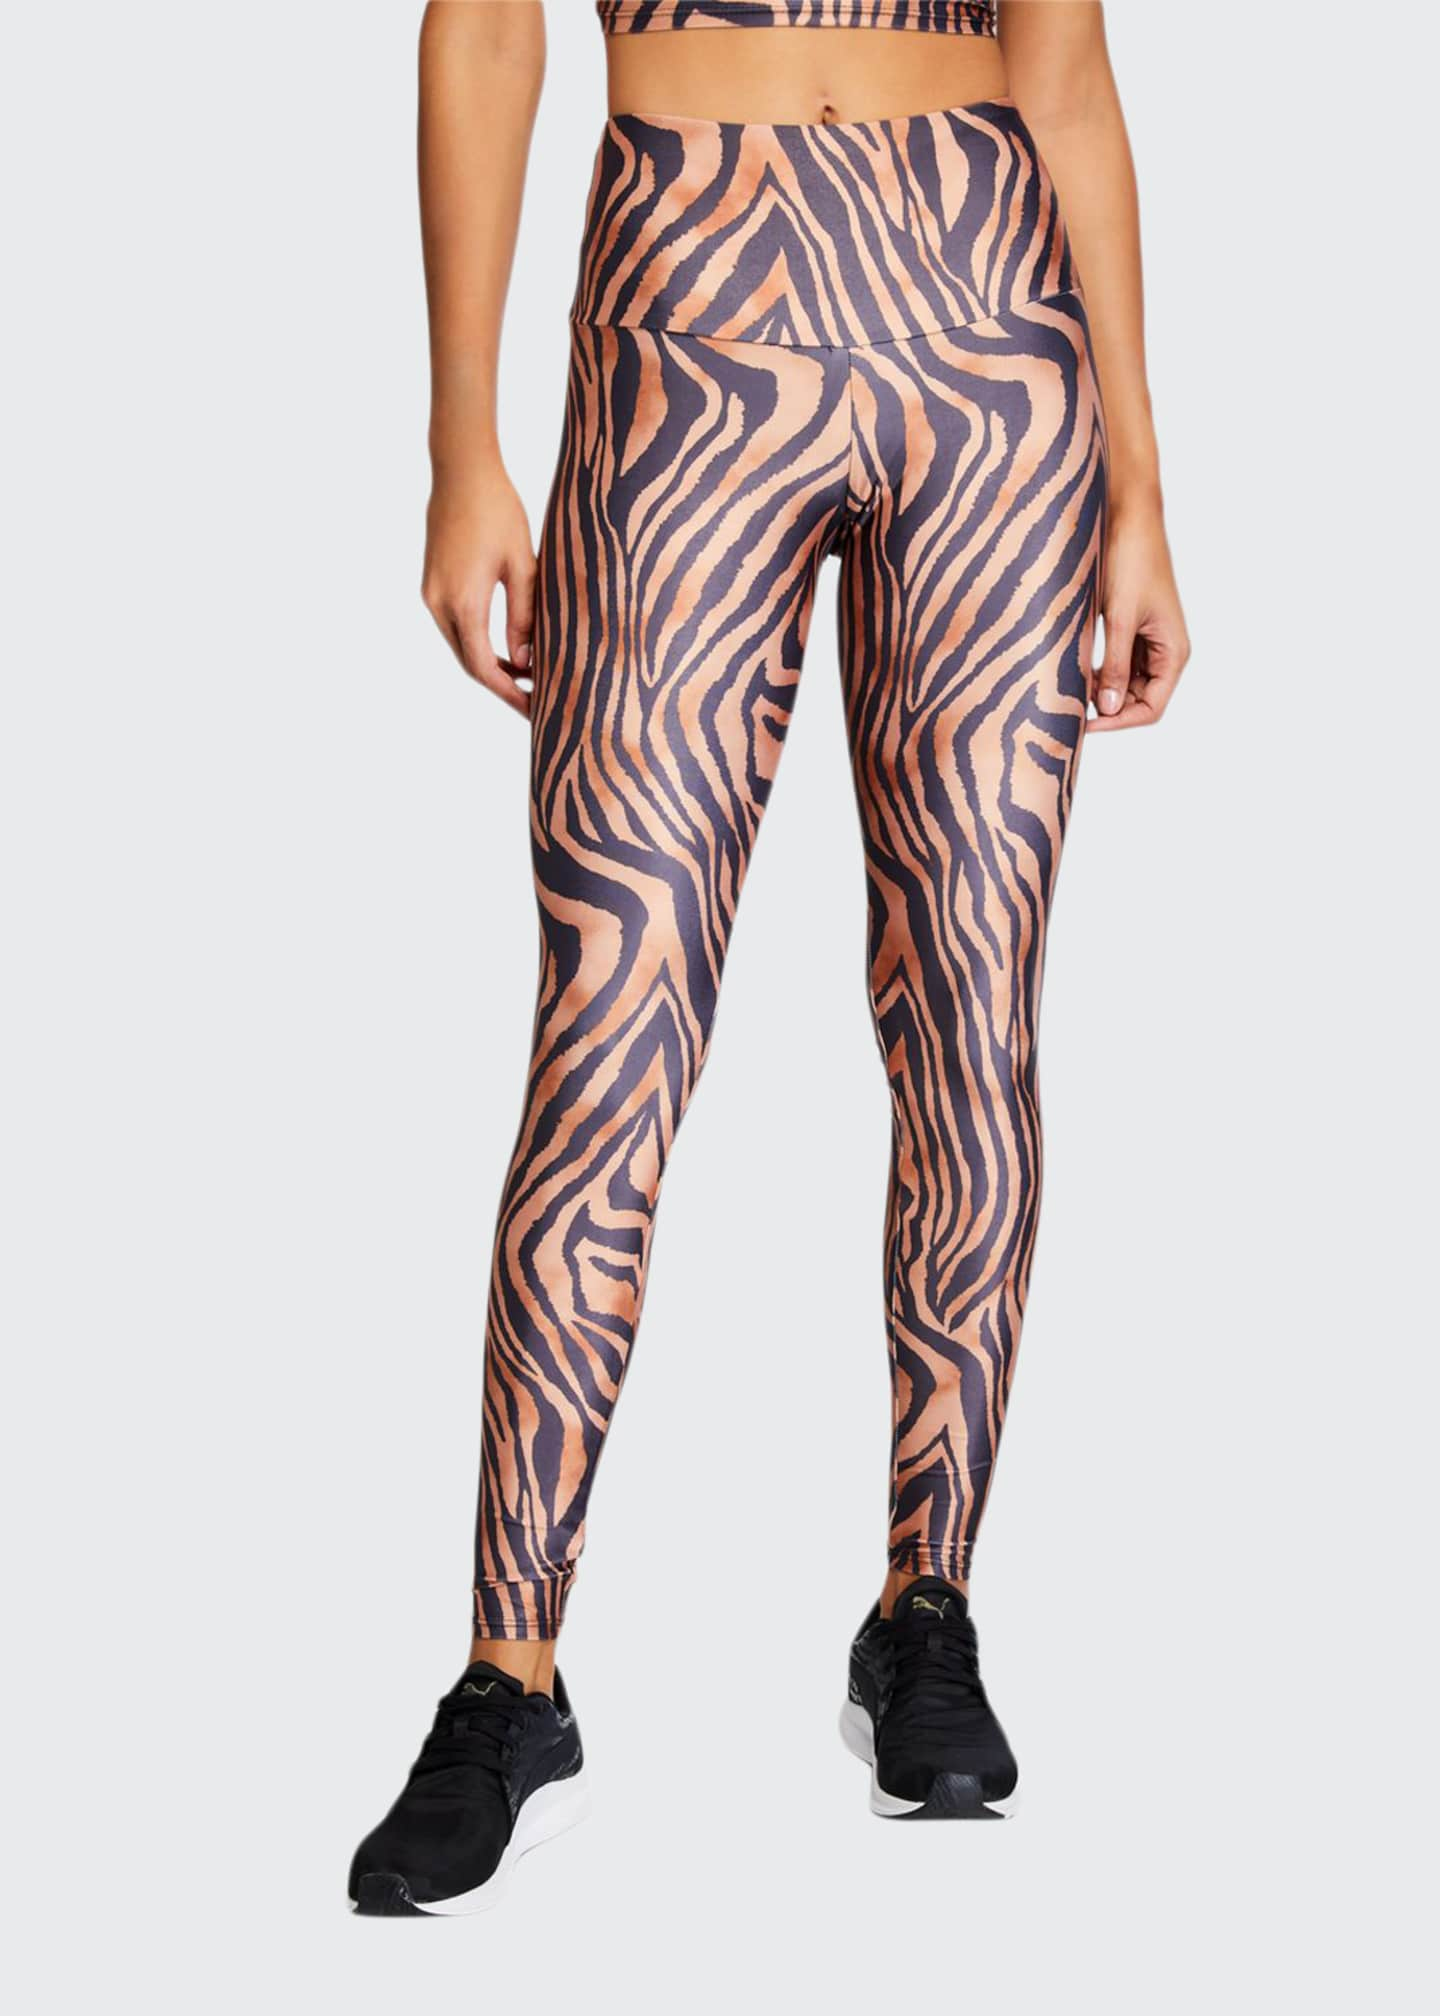 Onzie High-Rise Leggings, Tiger